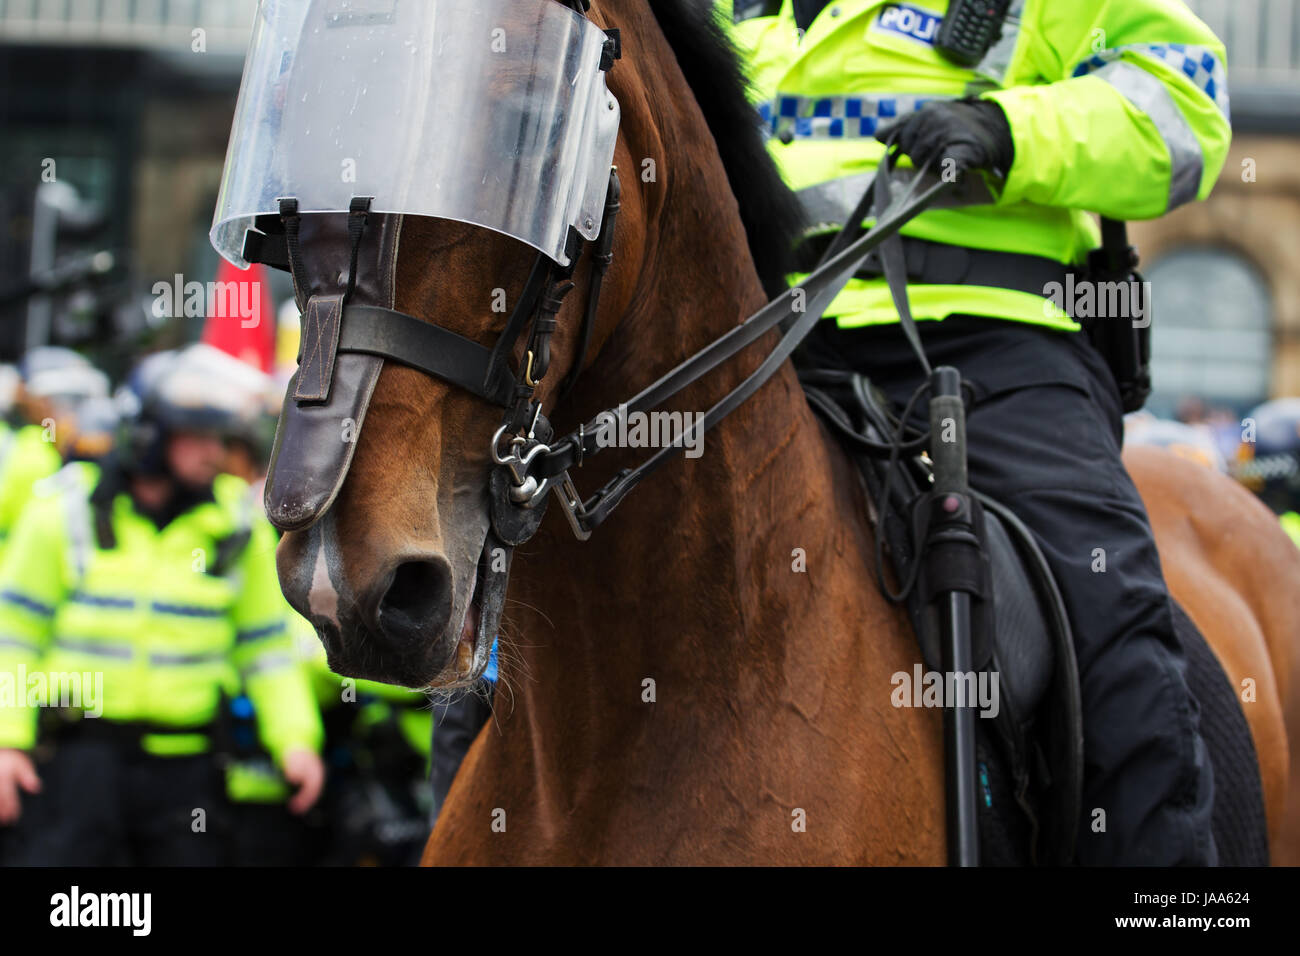 Mounted Police Horses In Riot Gear High Resolution Stock Photography And Images Alamy